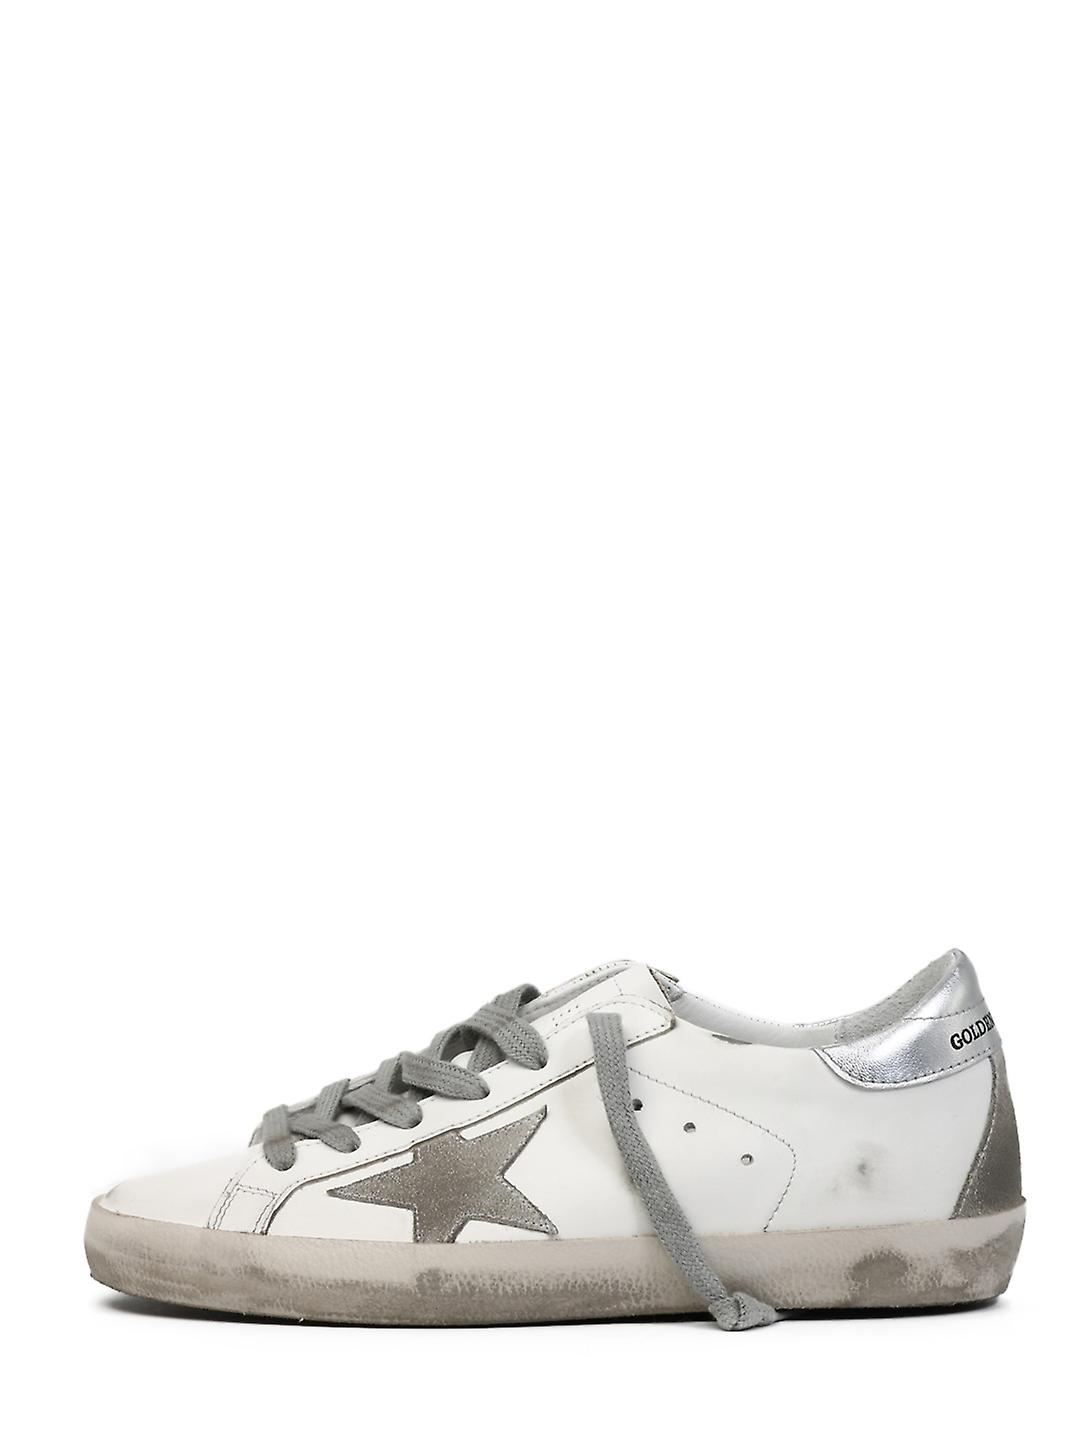 Golden Goose Gwf00102f00031710273 Women's White Leather Sneakers